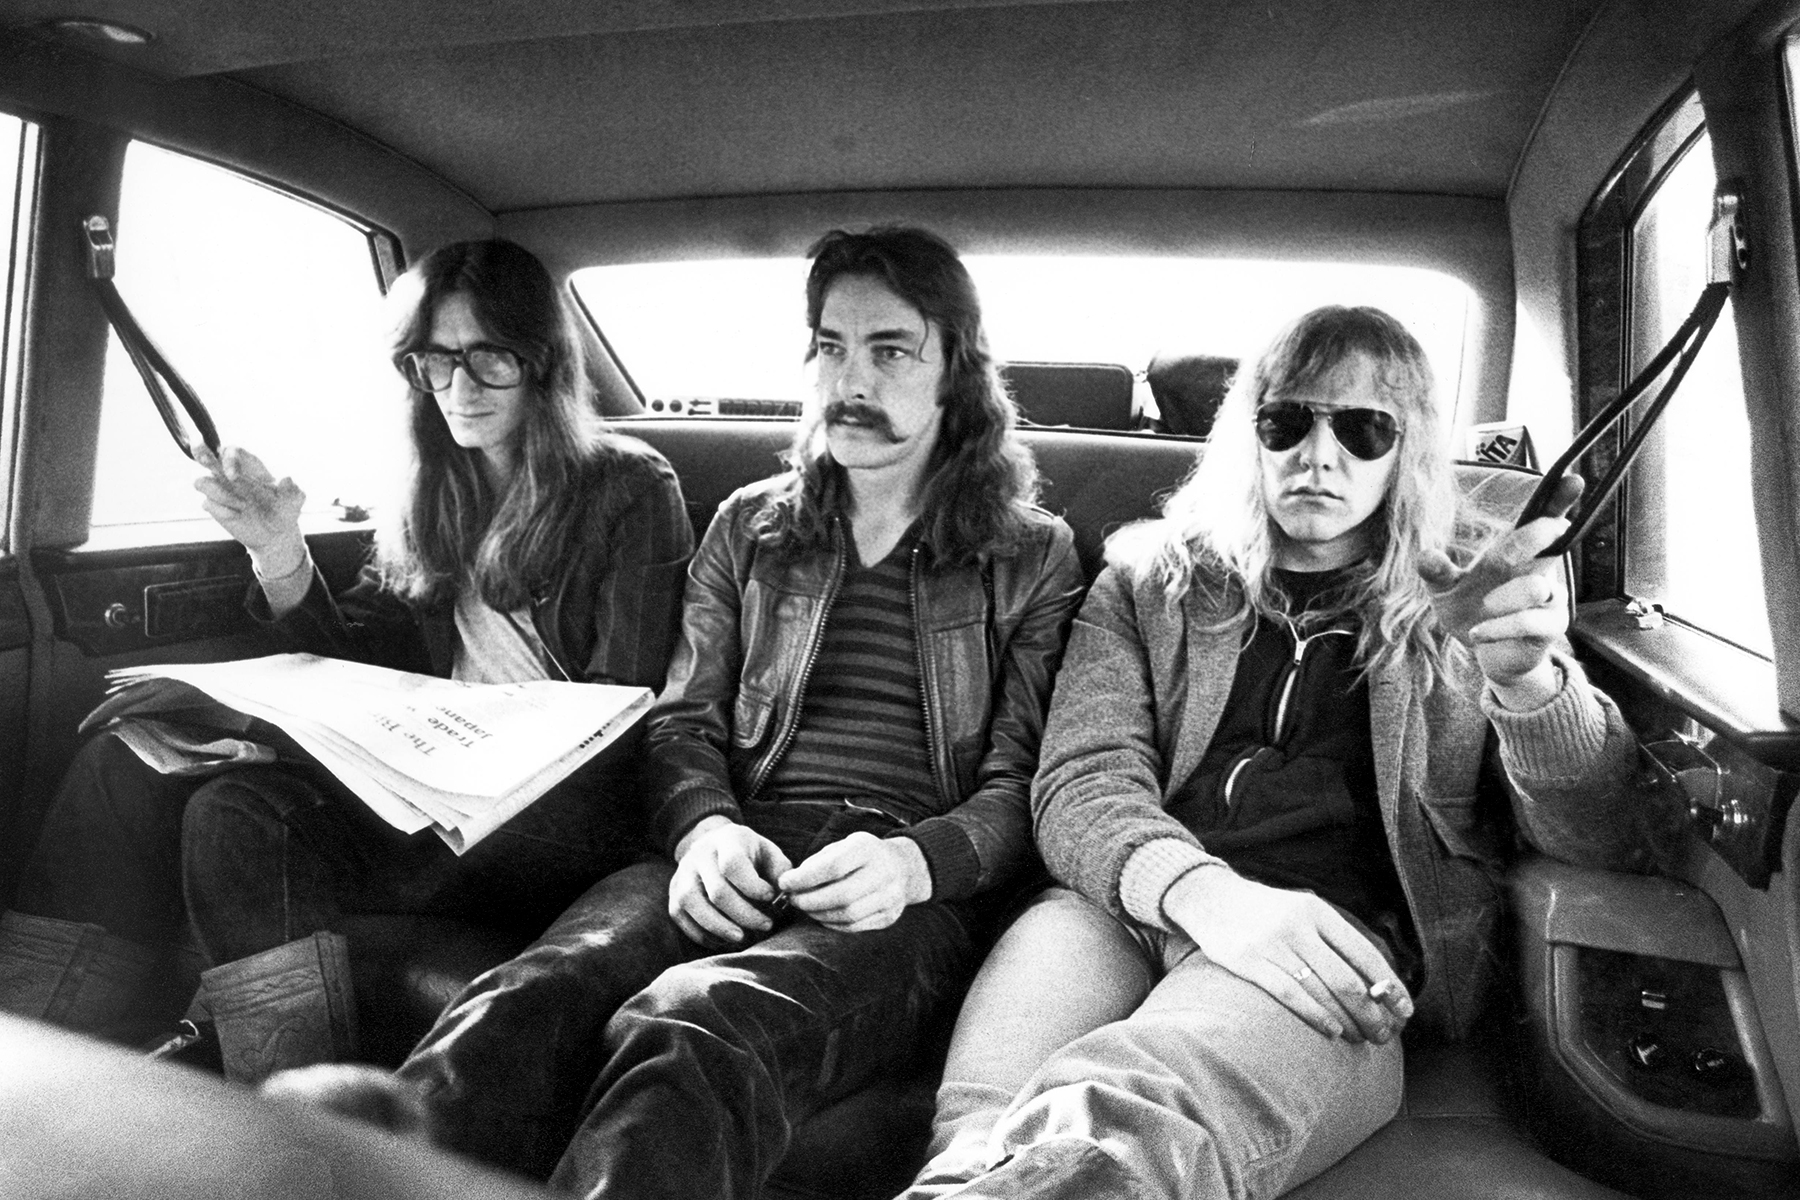 UNITED KINGDOM - FEBRUARY 12: BIRMINGHAM Photo of Neil PEART and RUSH and Geddy LEE and Alex LIFESON, Geddy Lee, Neil Peart, Alex Lifeson - posed, group shot, sitting in car during A Farewell To Kings tour (Photo by Fin Costello/Redferns)